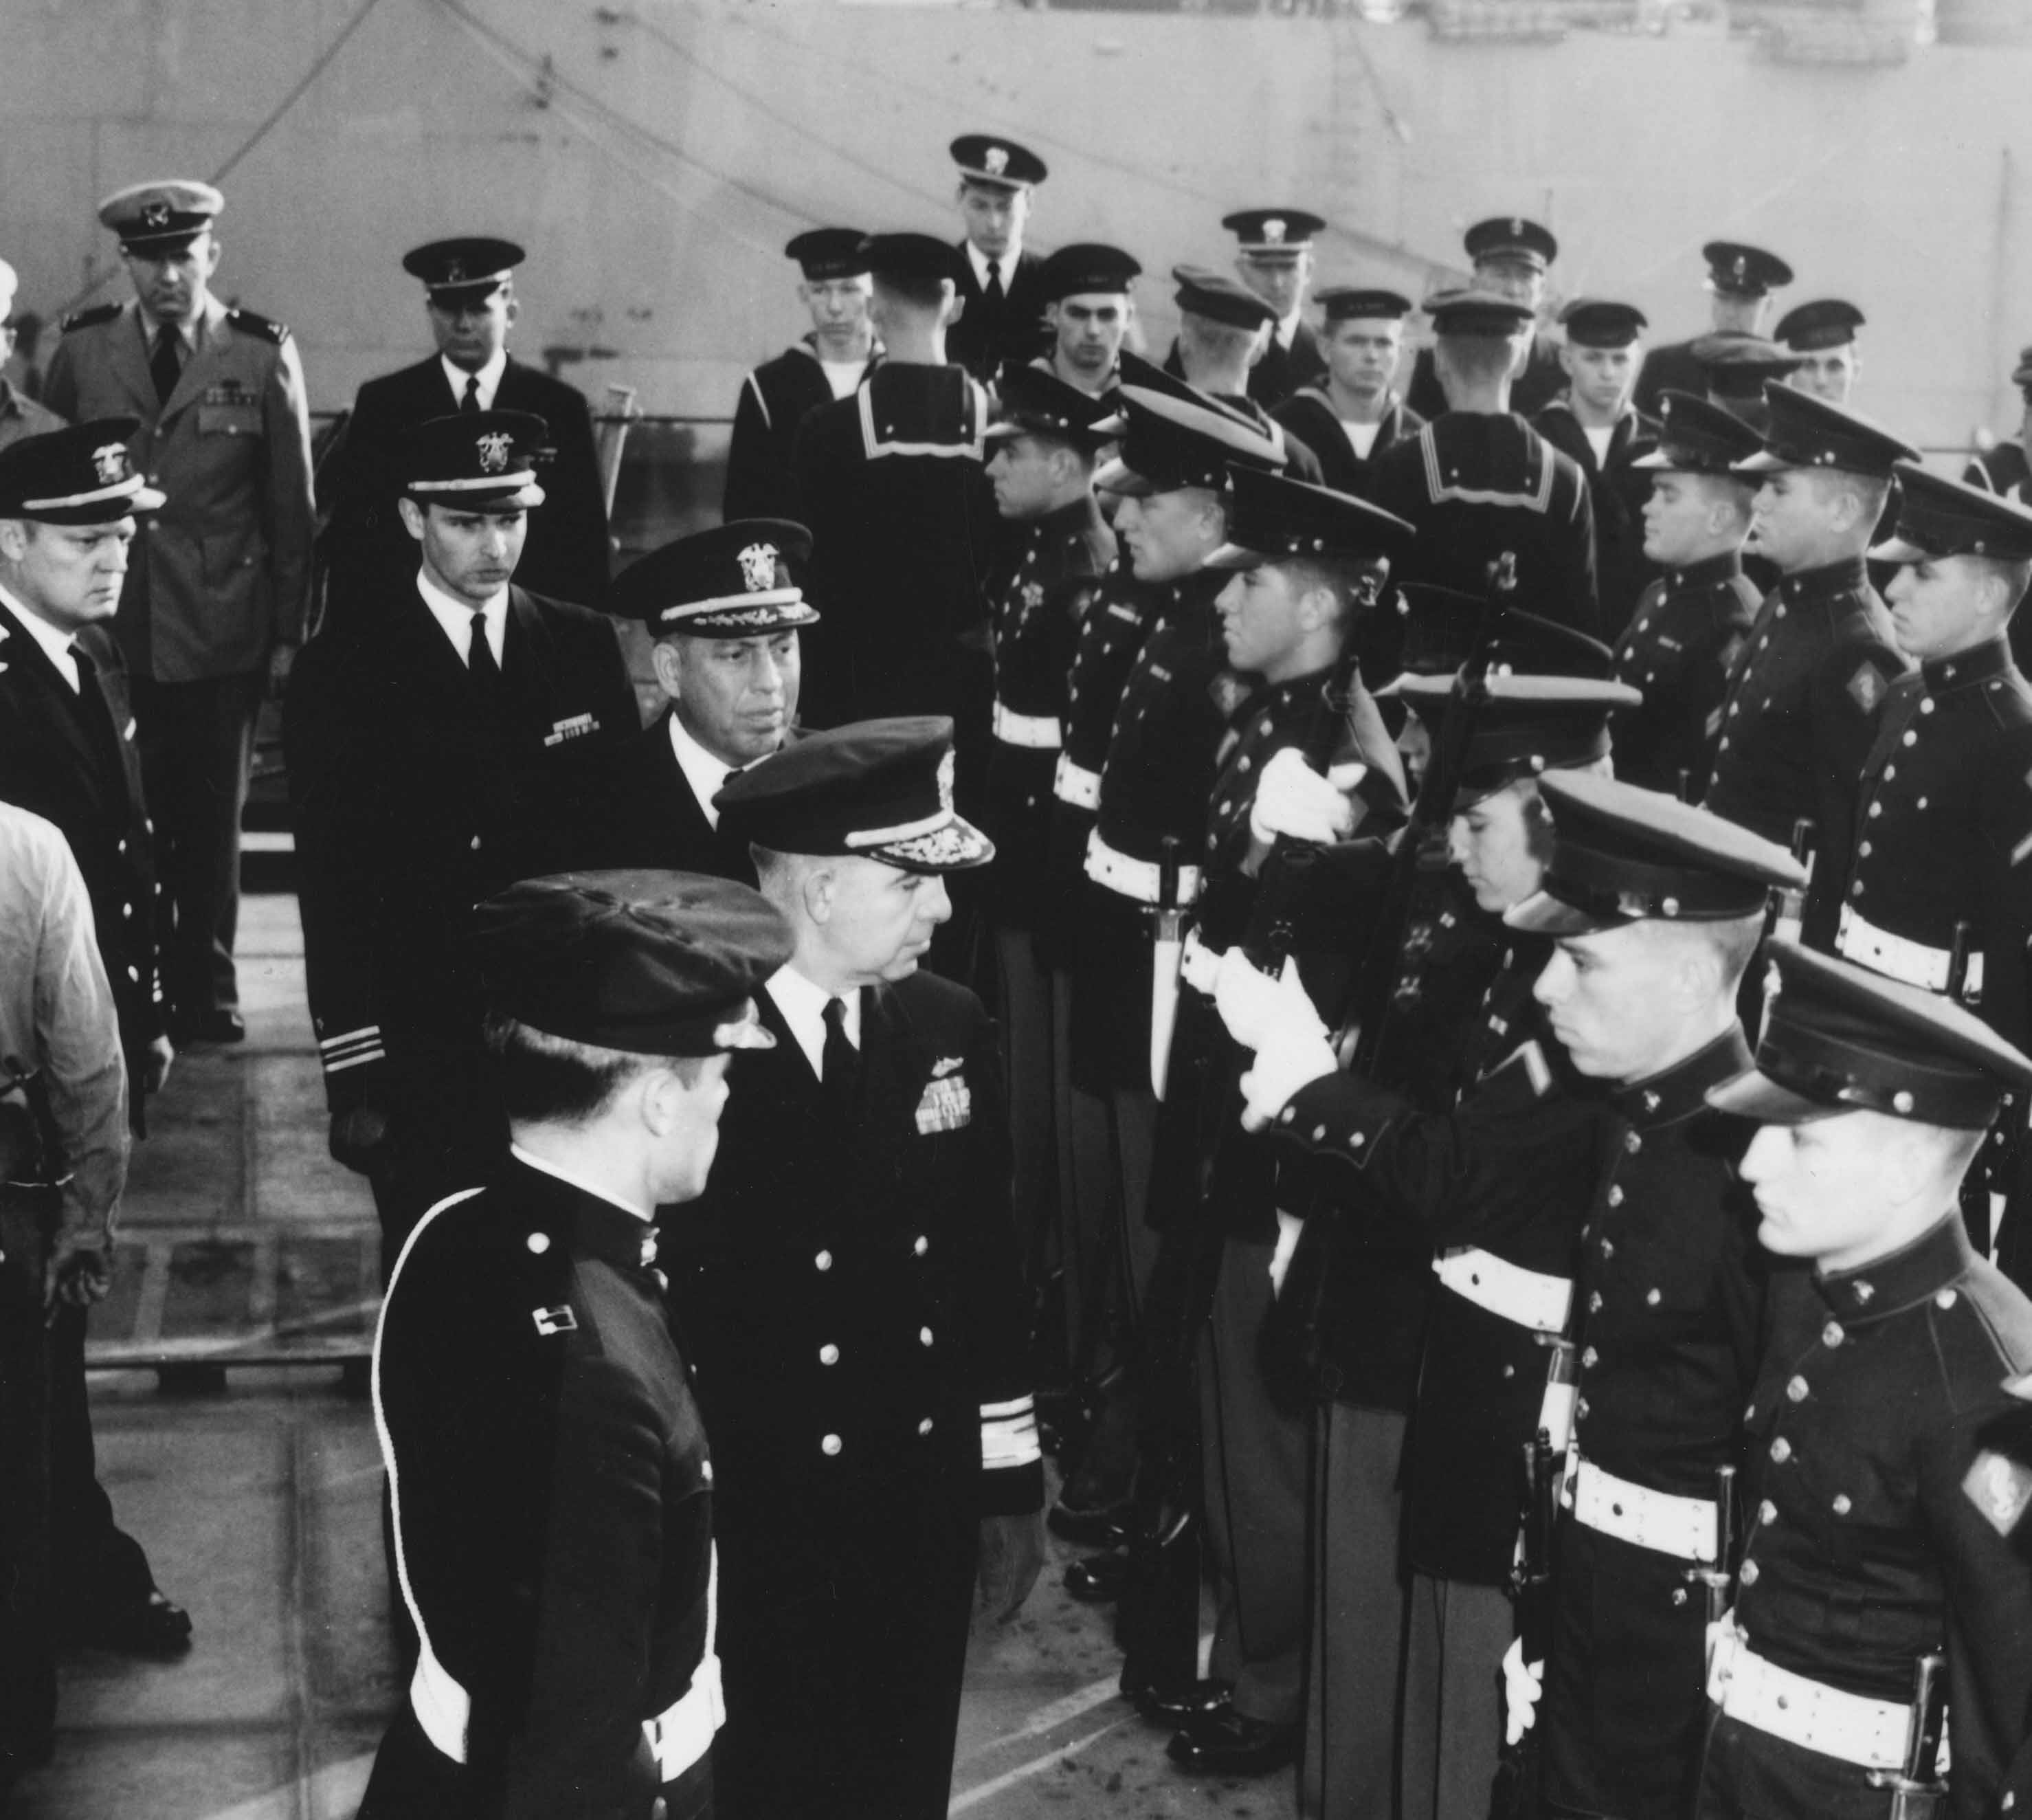 Capt. Mee and Admiral inspect crew